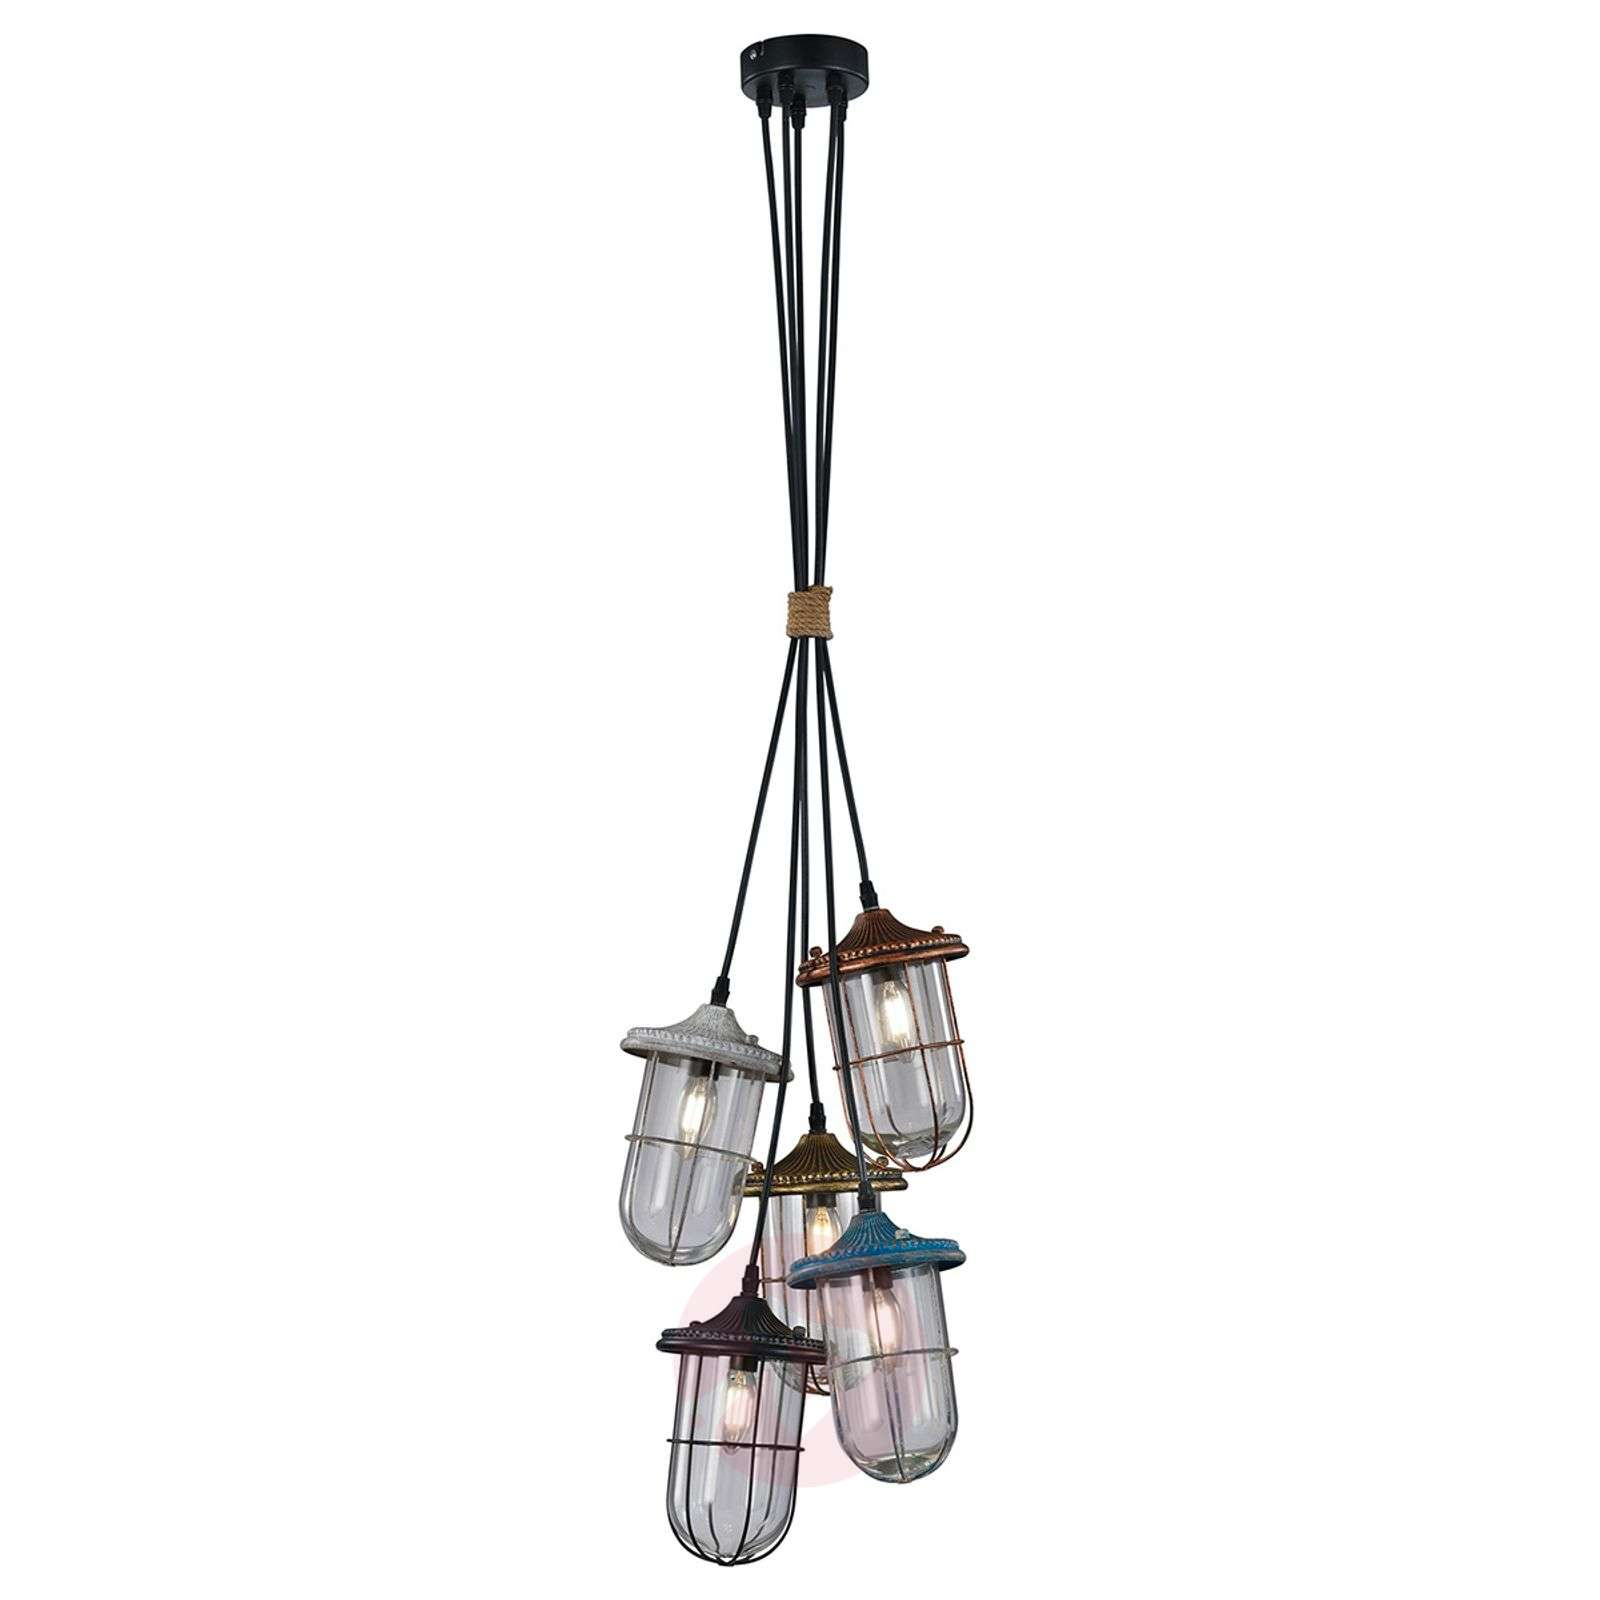 Birte stylish pendant light, 5-bulb-9004800-01